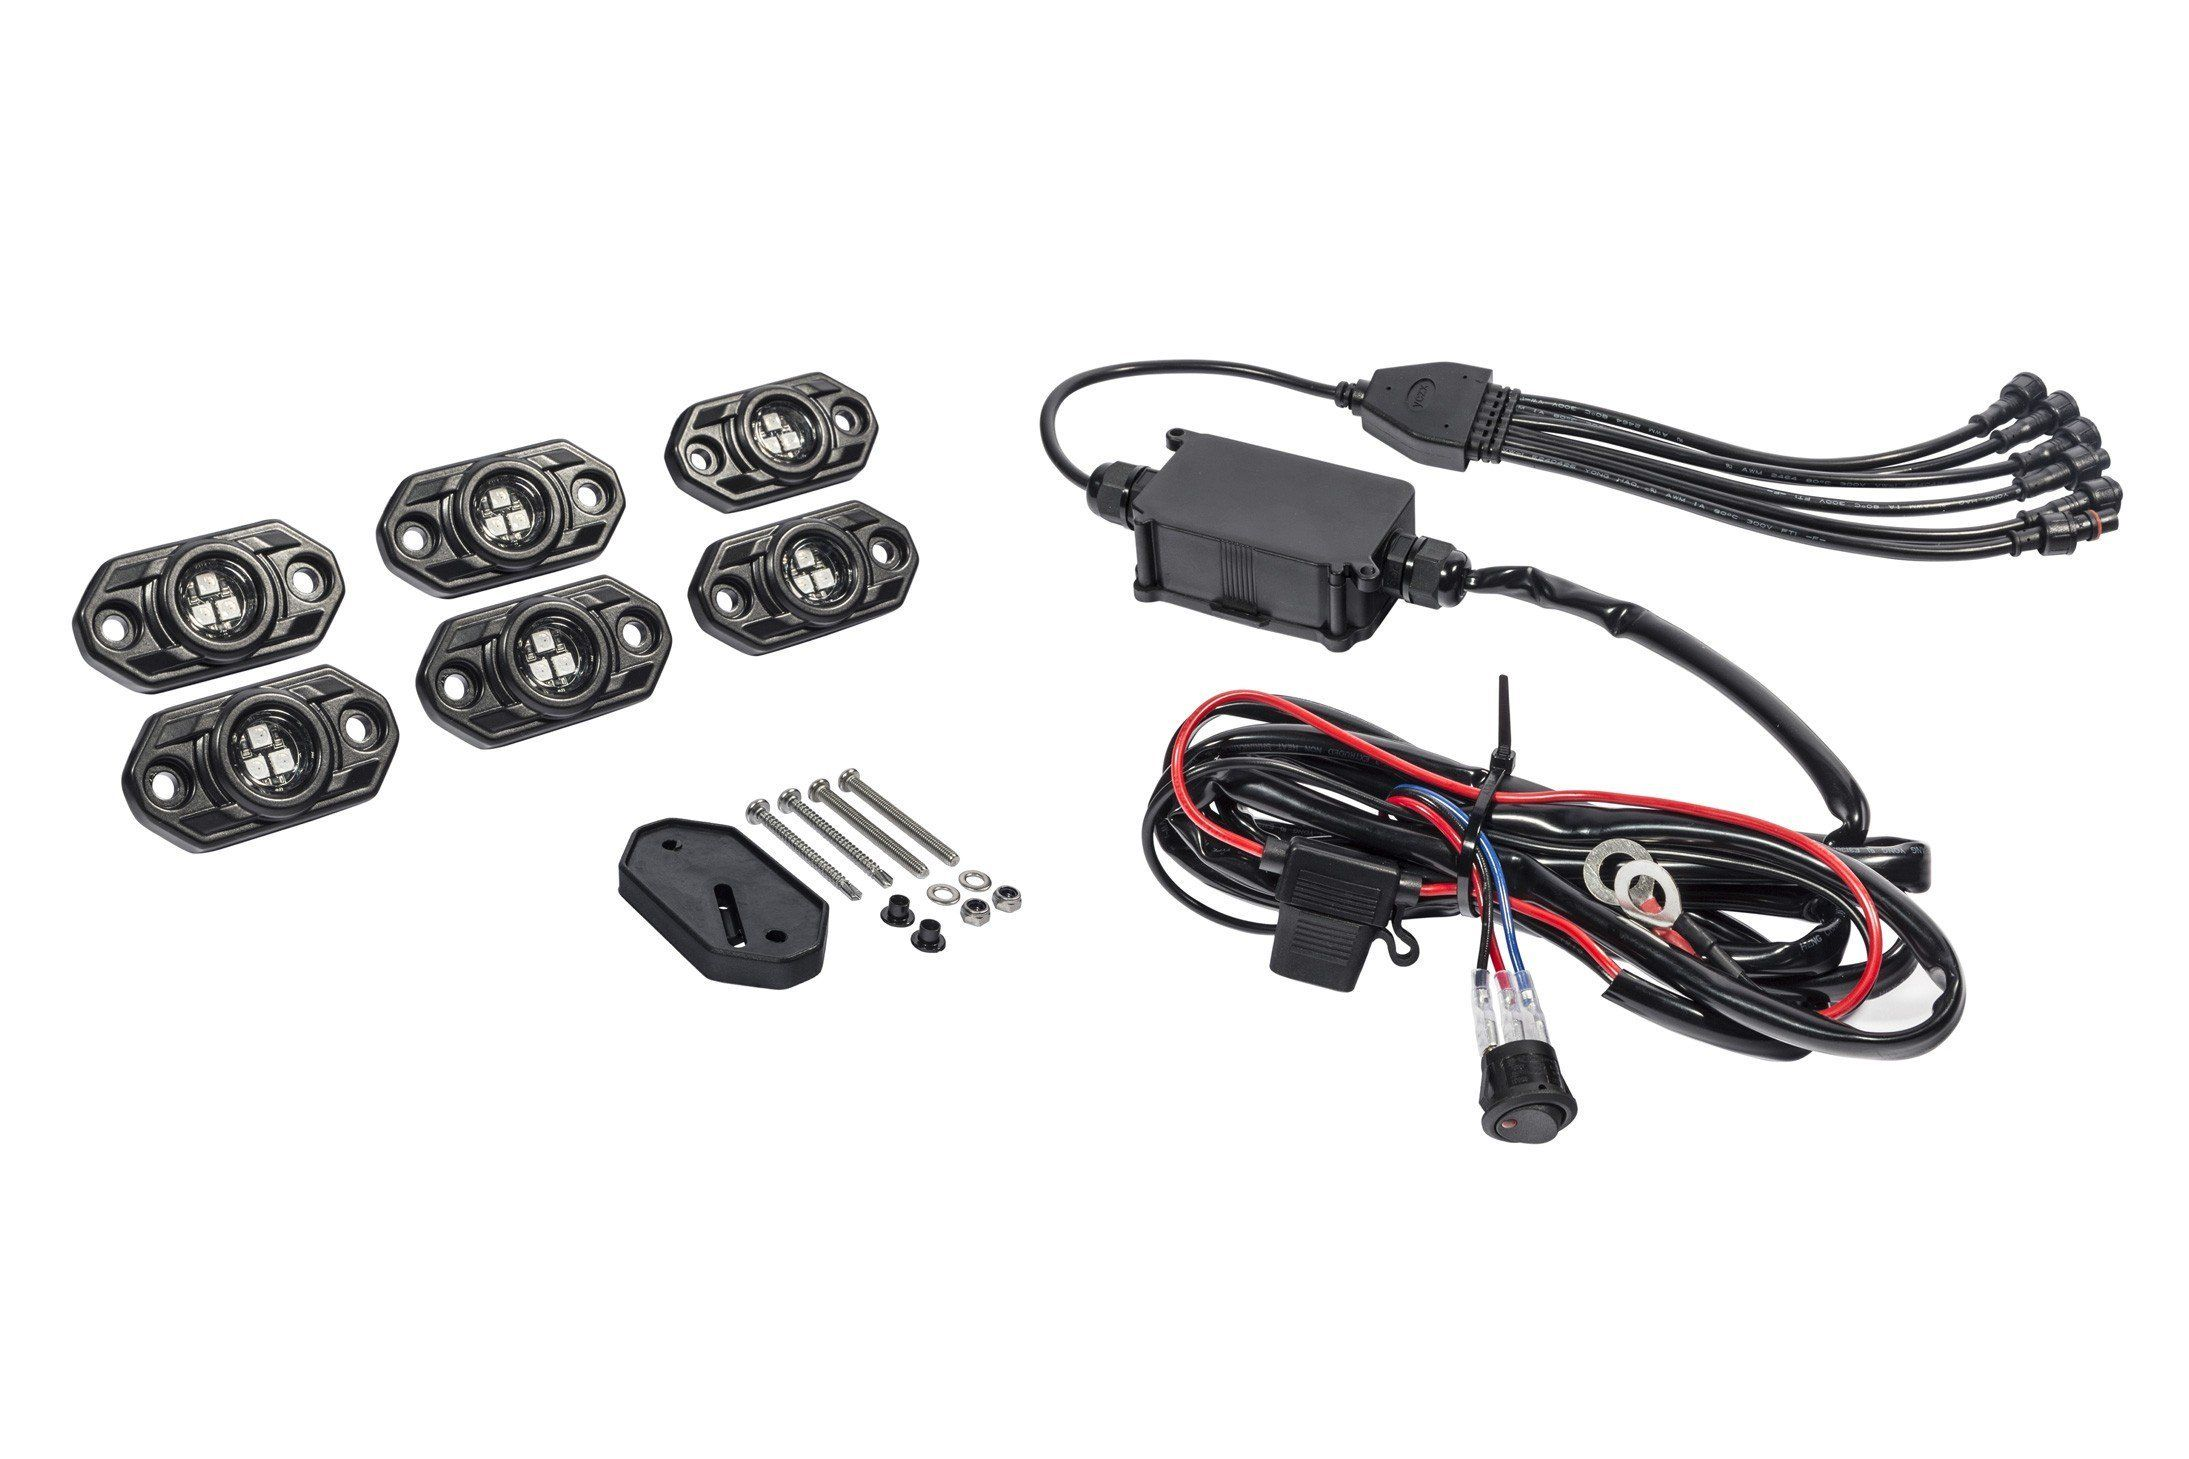 Kc Hilites C Series Rgb Led Rock Light Kit 339